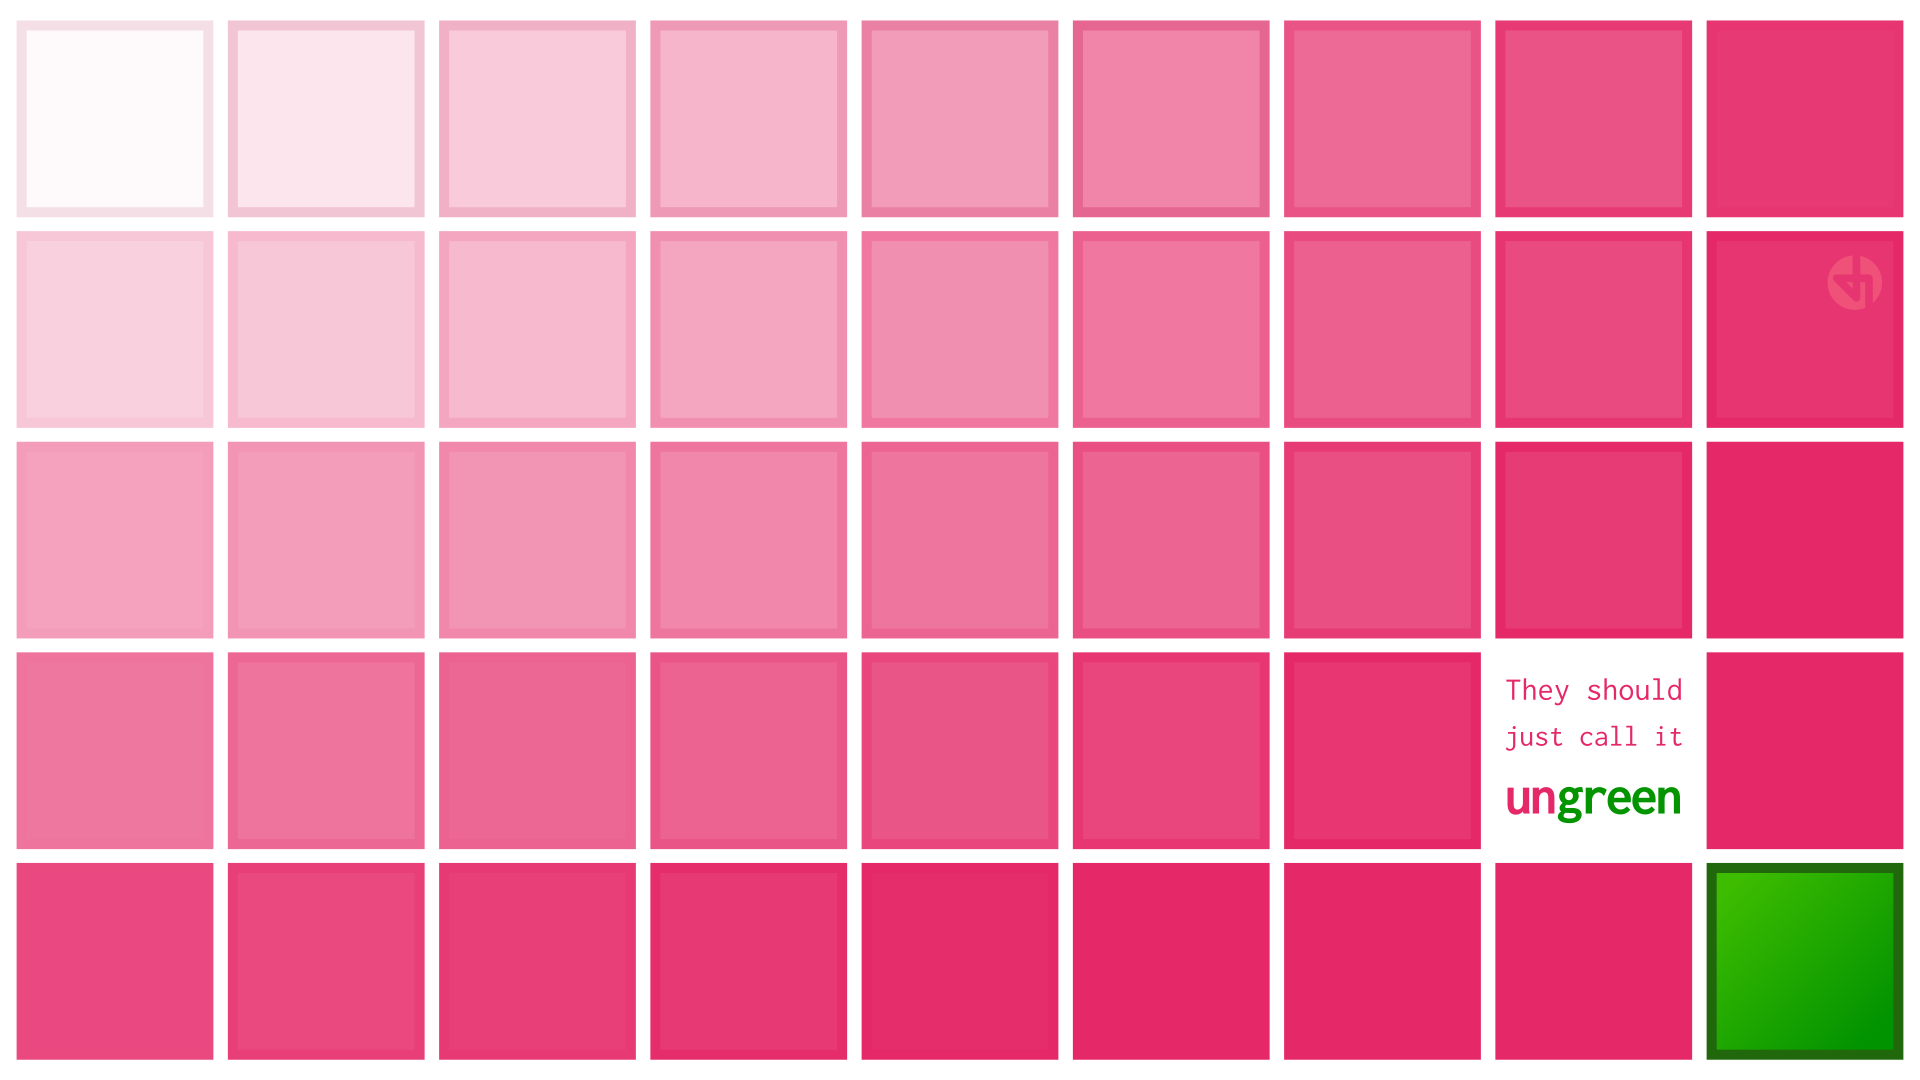 A desktop wallpaper that explains why pink isn't a color of light. It's just what's left over when you take green out of white light.